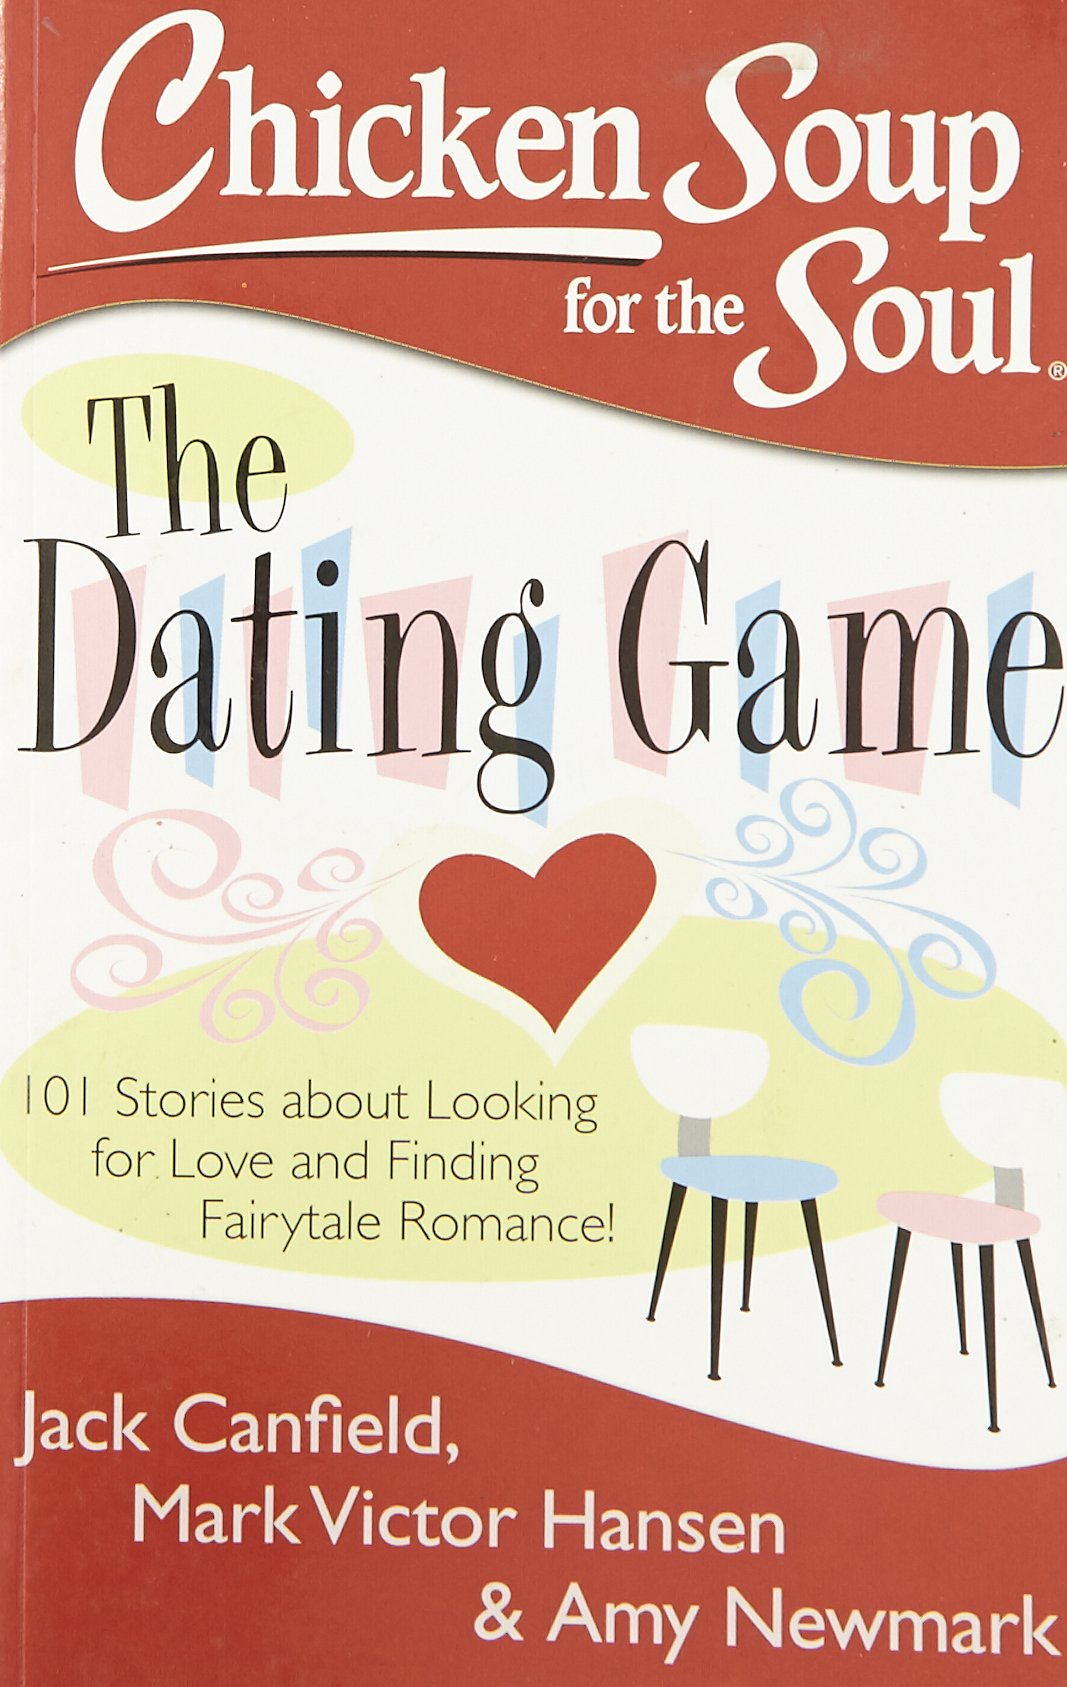 The Dating Chicken Soul For Soup